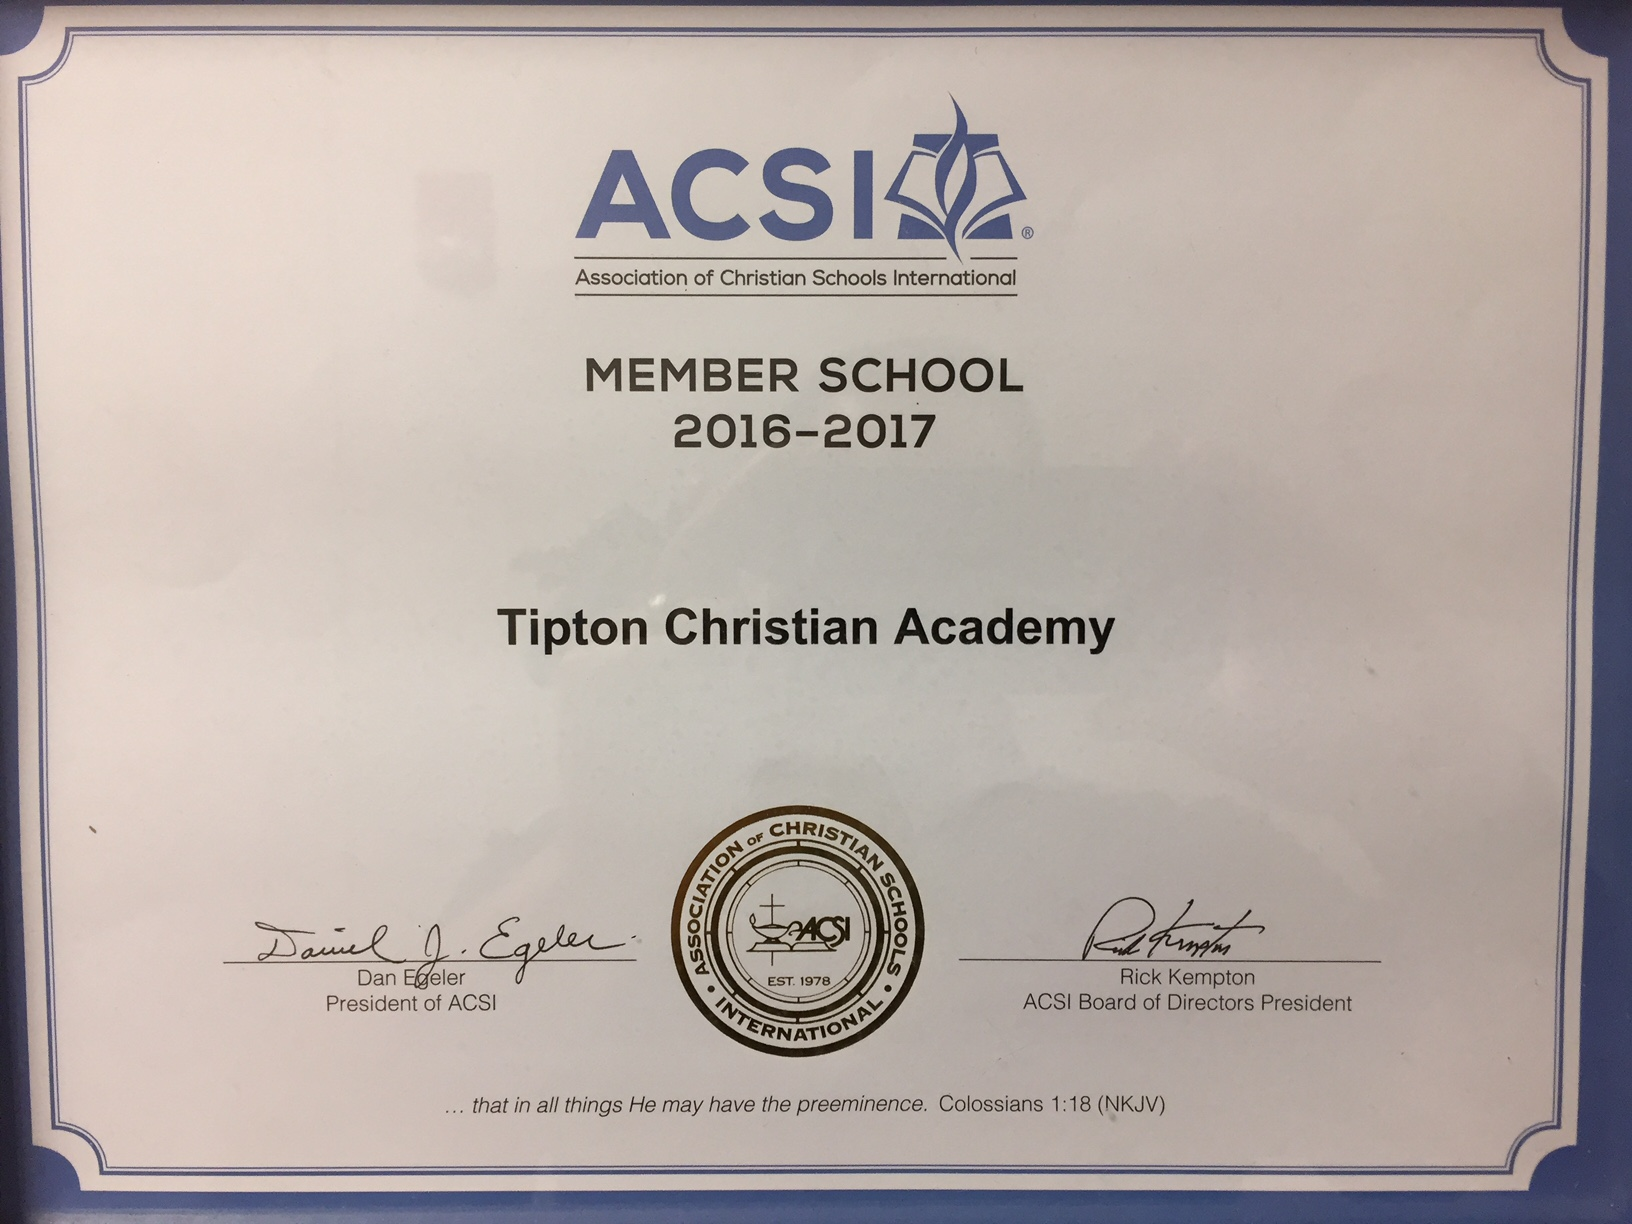 Tipton Christian Academy's Profile & Standards Report